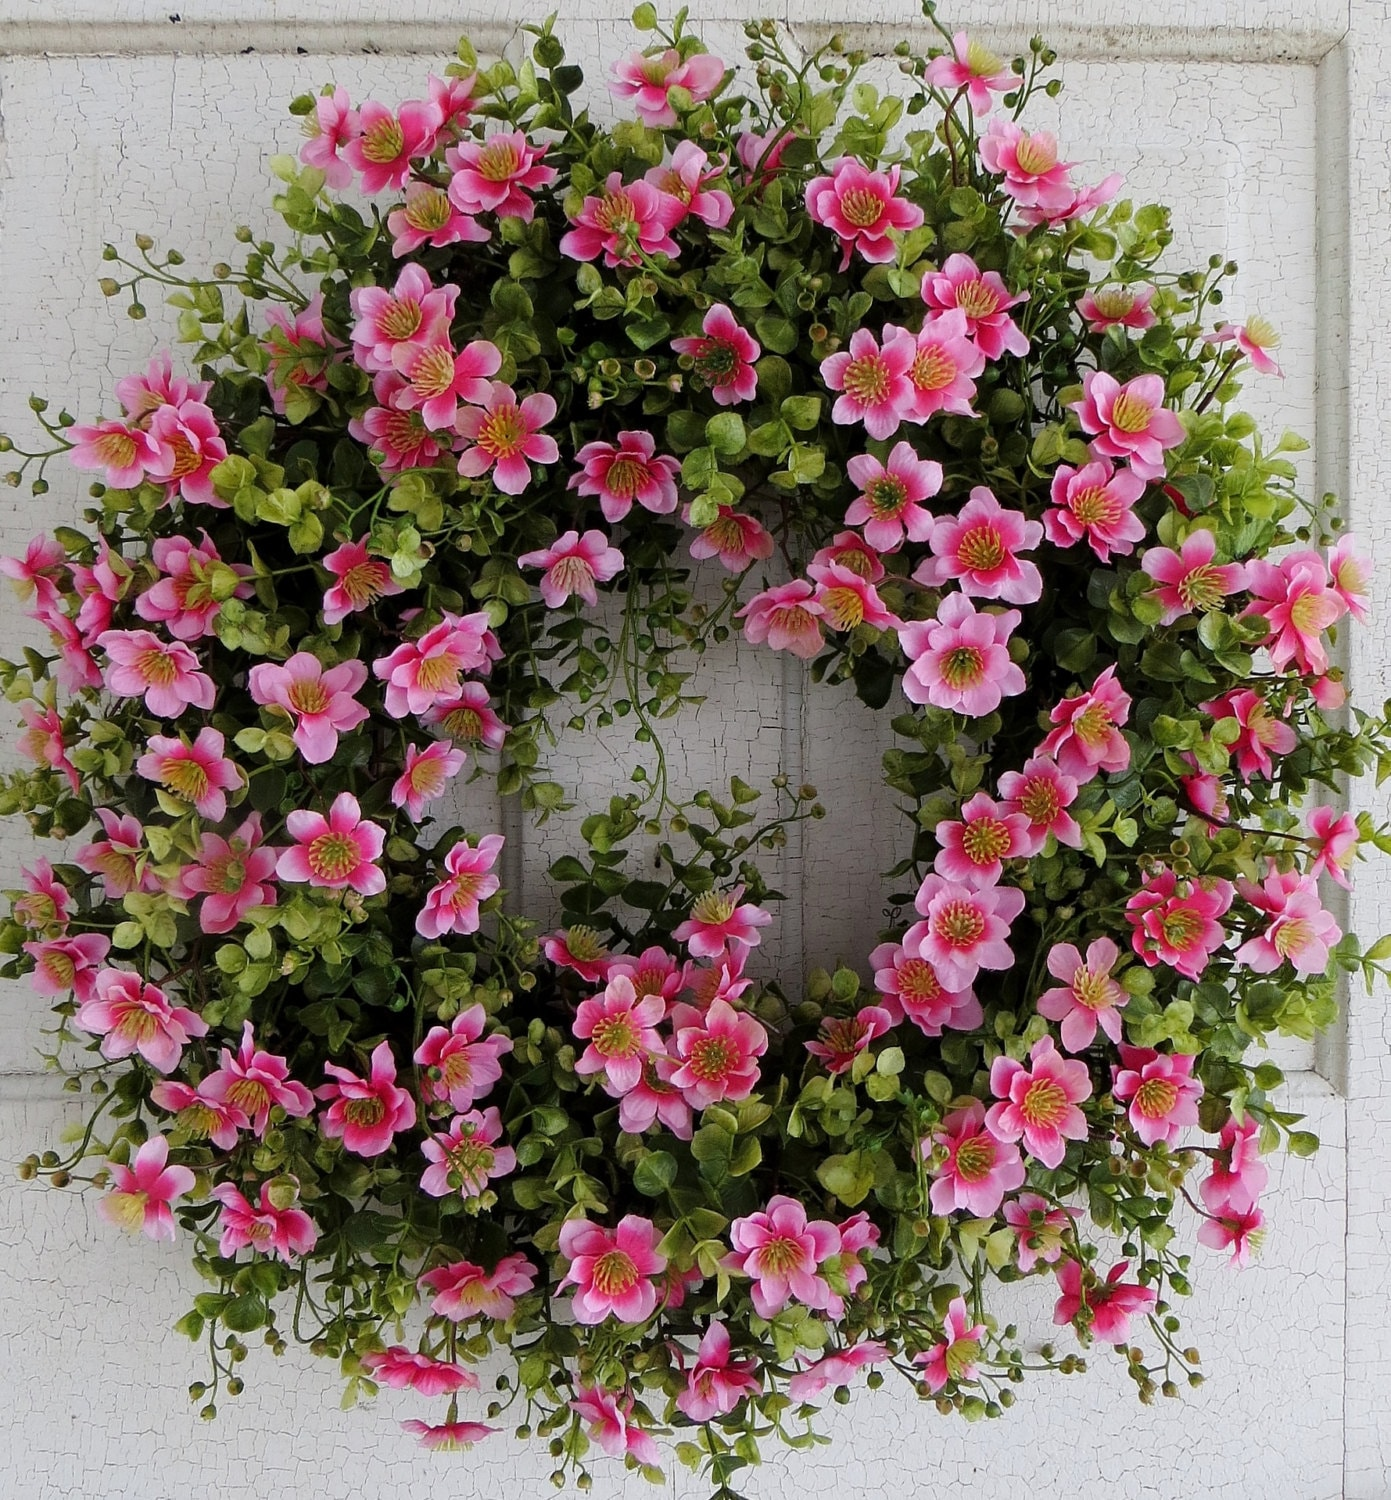 Large Floral Door Wreath Flower Wreath Spring Summer Door |Spring Flower Wreath